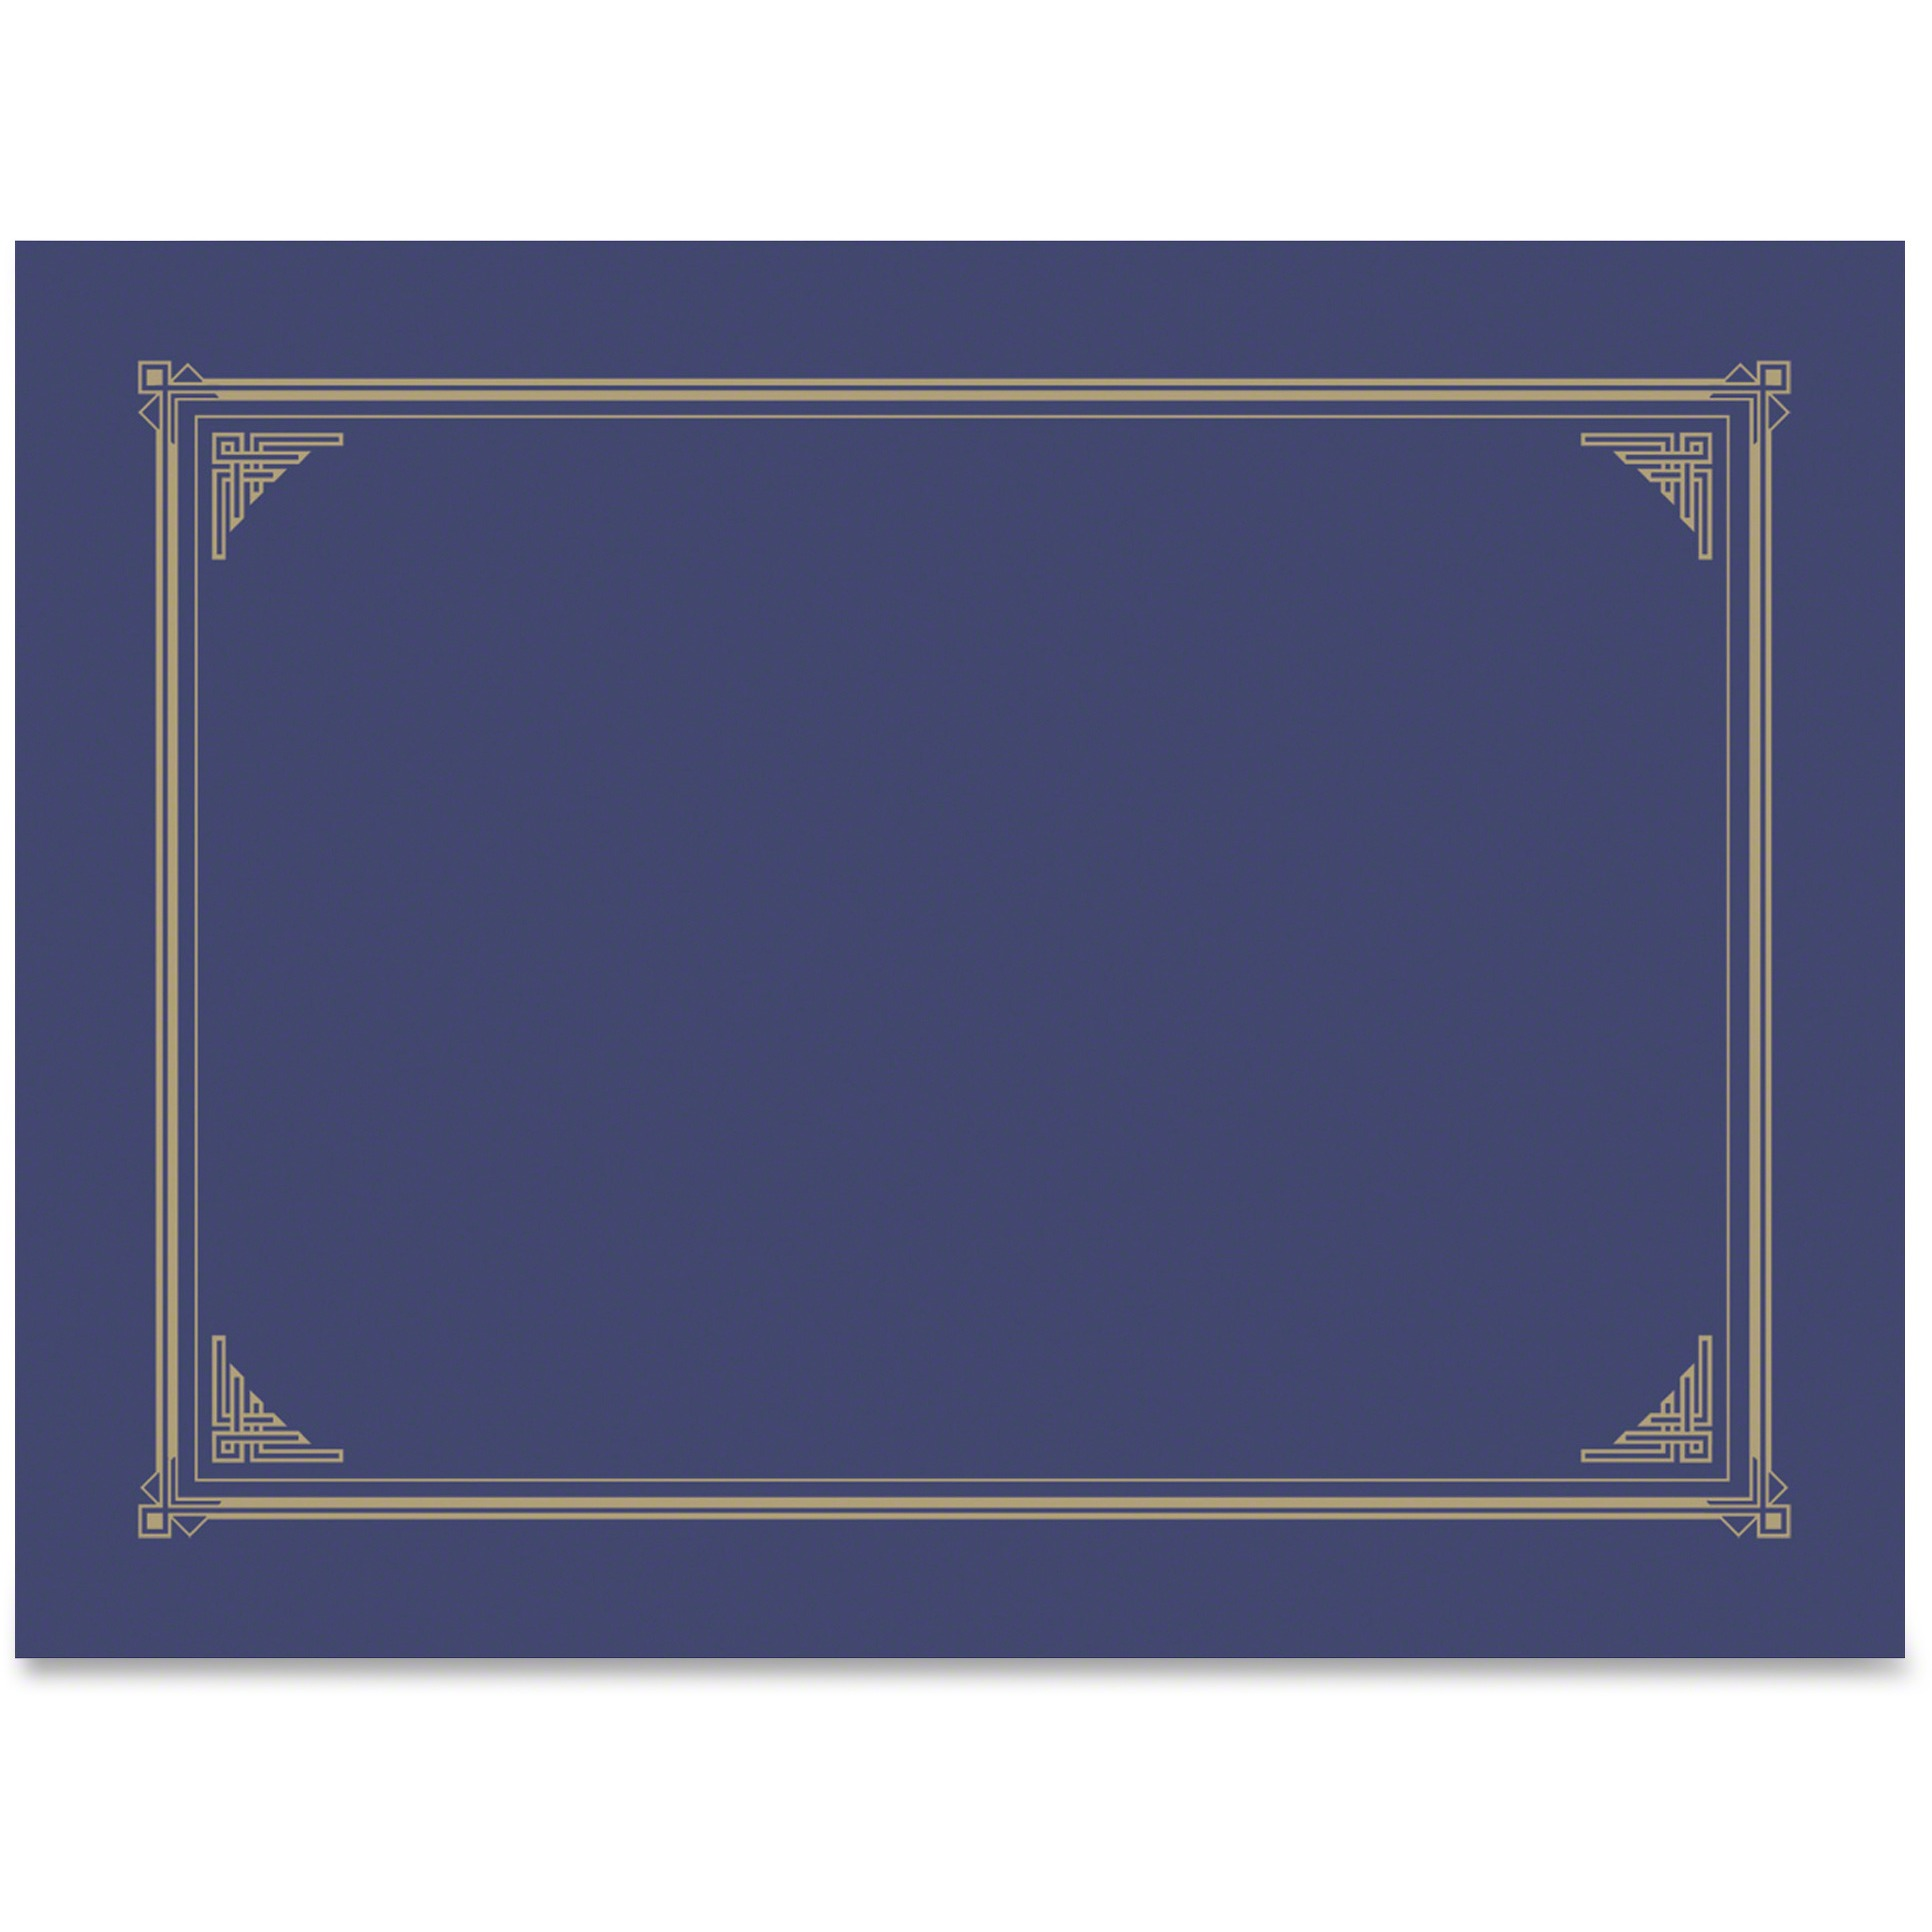 Geographics, GEO47401, Award Certificate Gold Design Covers, 6 / Pack, Metallic Blue